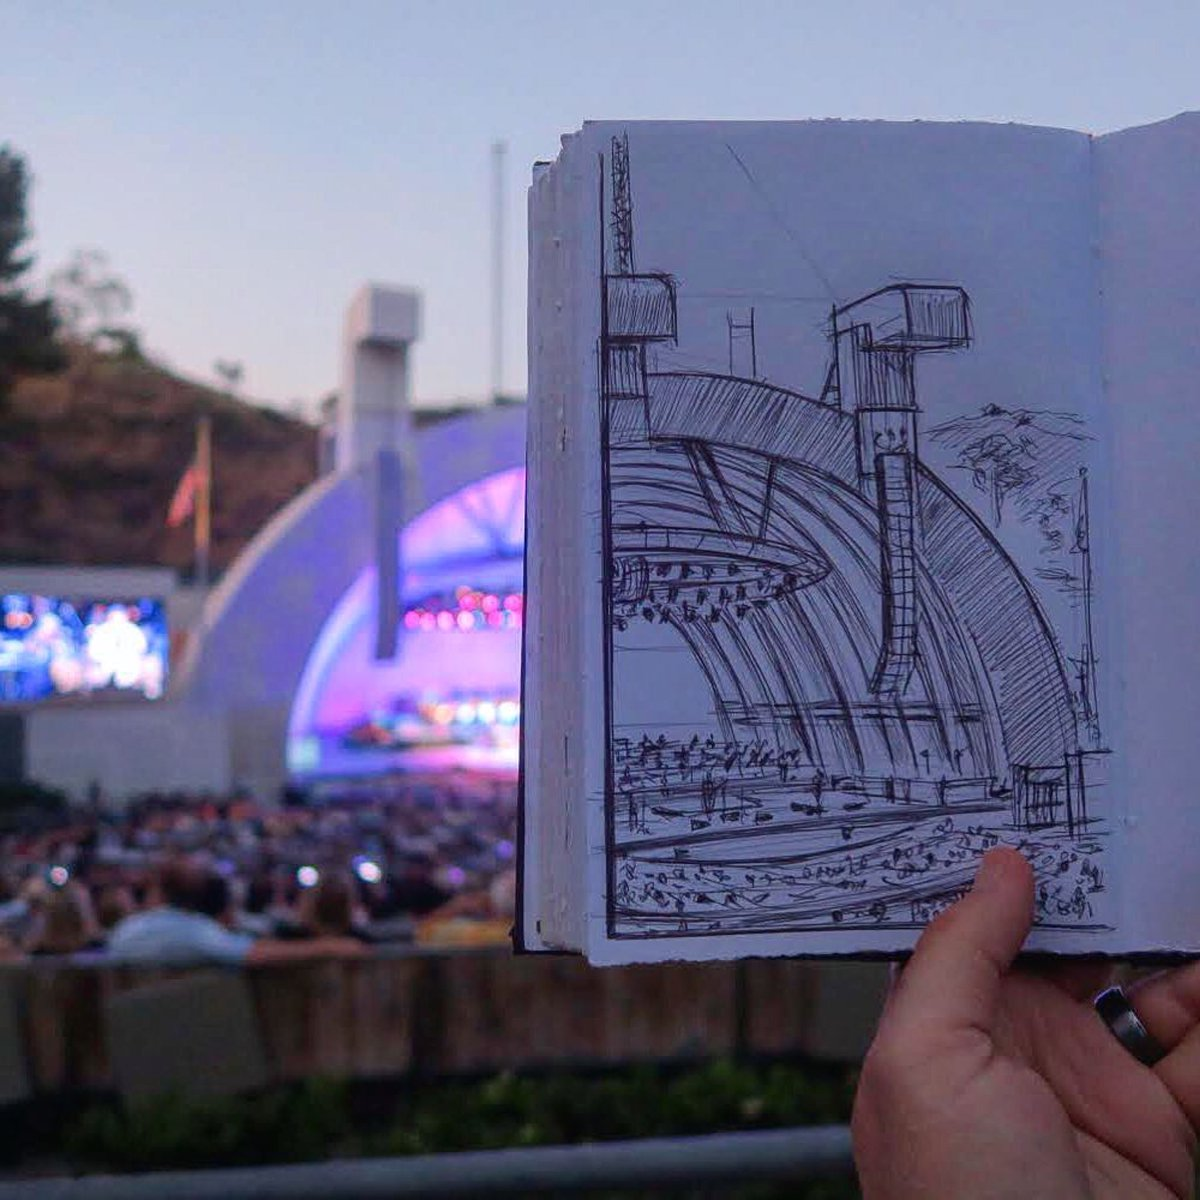 Hollywood Bowl On Twitter What S Your Favorite Form Of Artistic Expression Pizzashoe Draws On Instagram